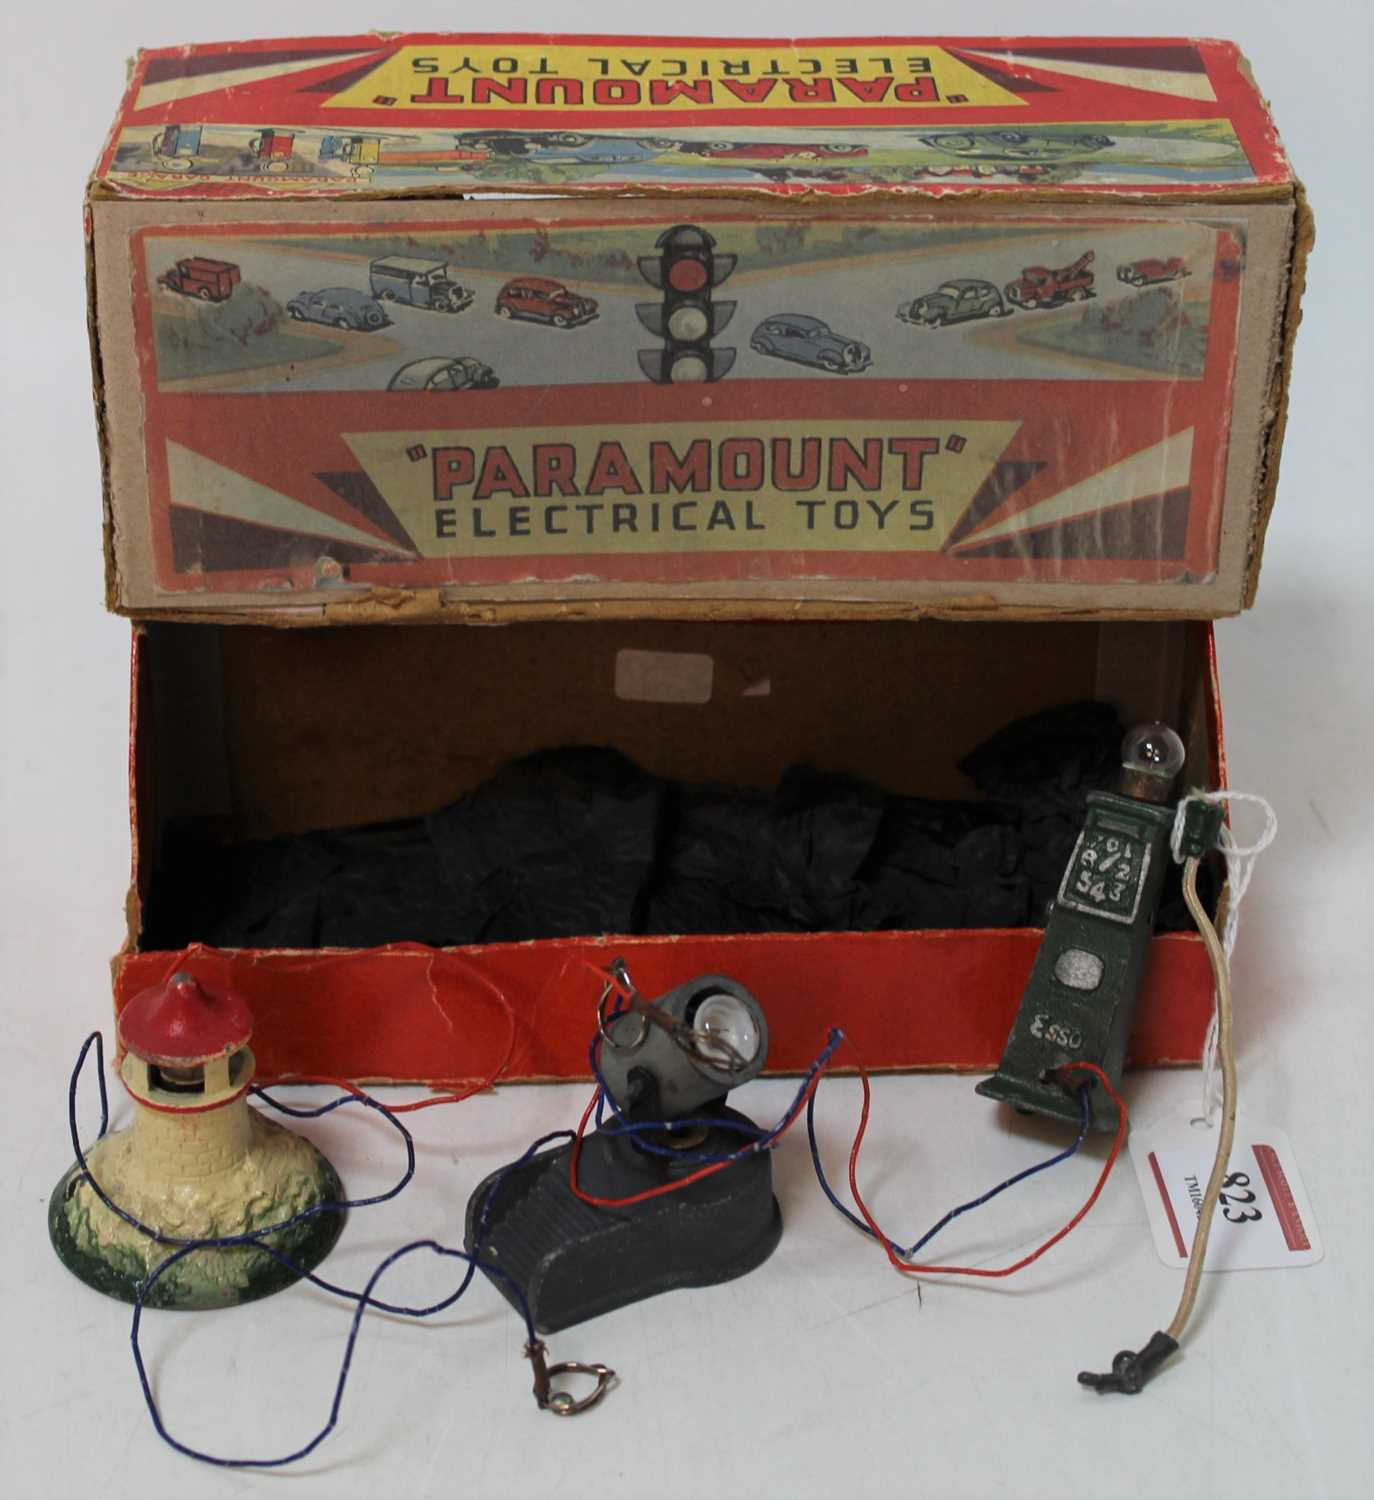 Paramount Electrical Toys, 3 piece Miniature Flood Light, Petrol Pump and Light House set, in the